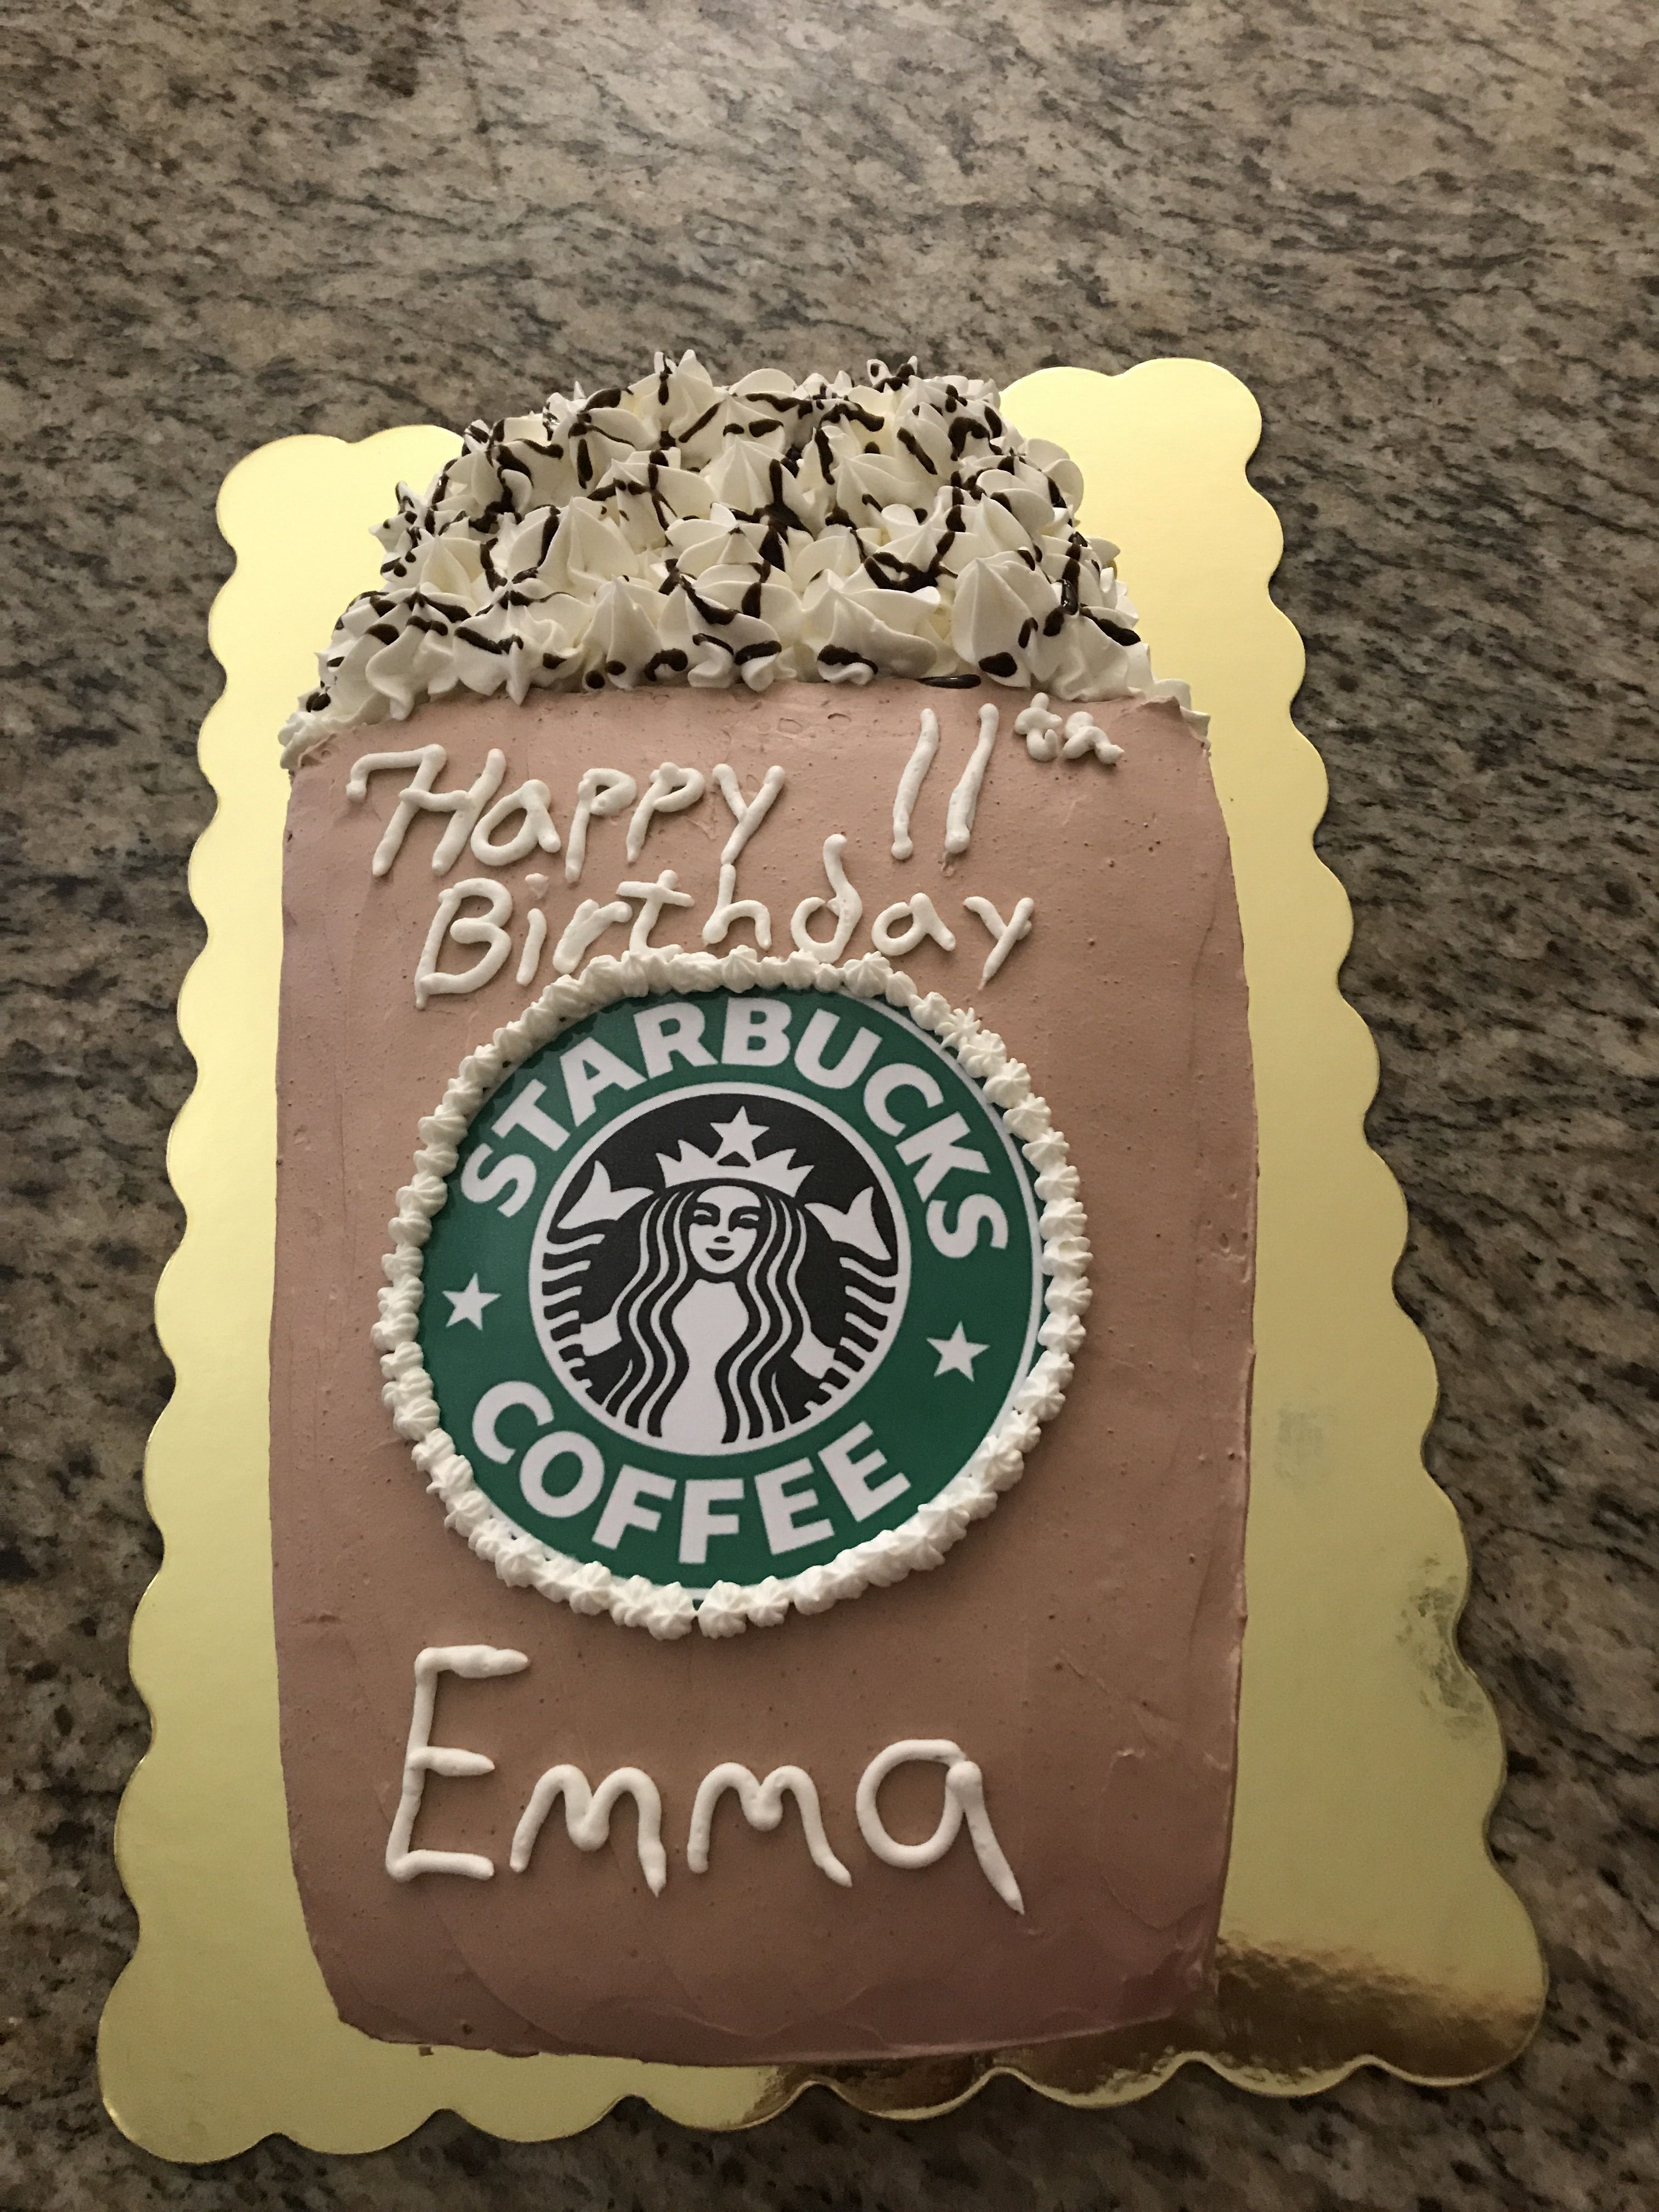 Birthday cake idea  #starbuckscake Really creative Starbucks cake . Again an idea for a perfect cake #starbuckscake Birthday cake idea  #starbuckscake Really creative Starbucks cake . Again an idea for a perfect cake #starbuckscake